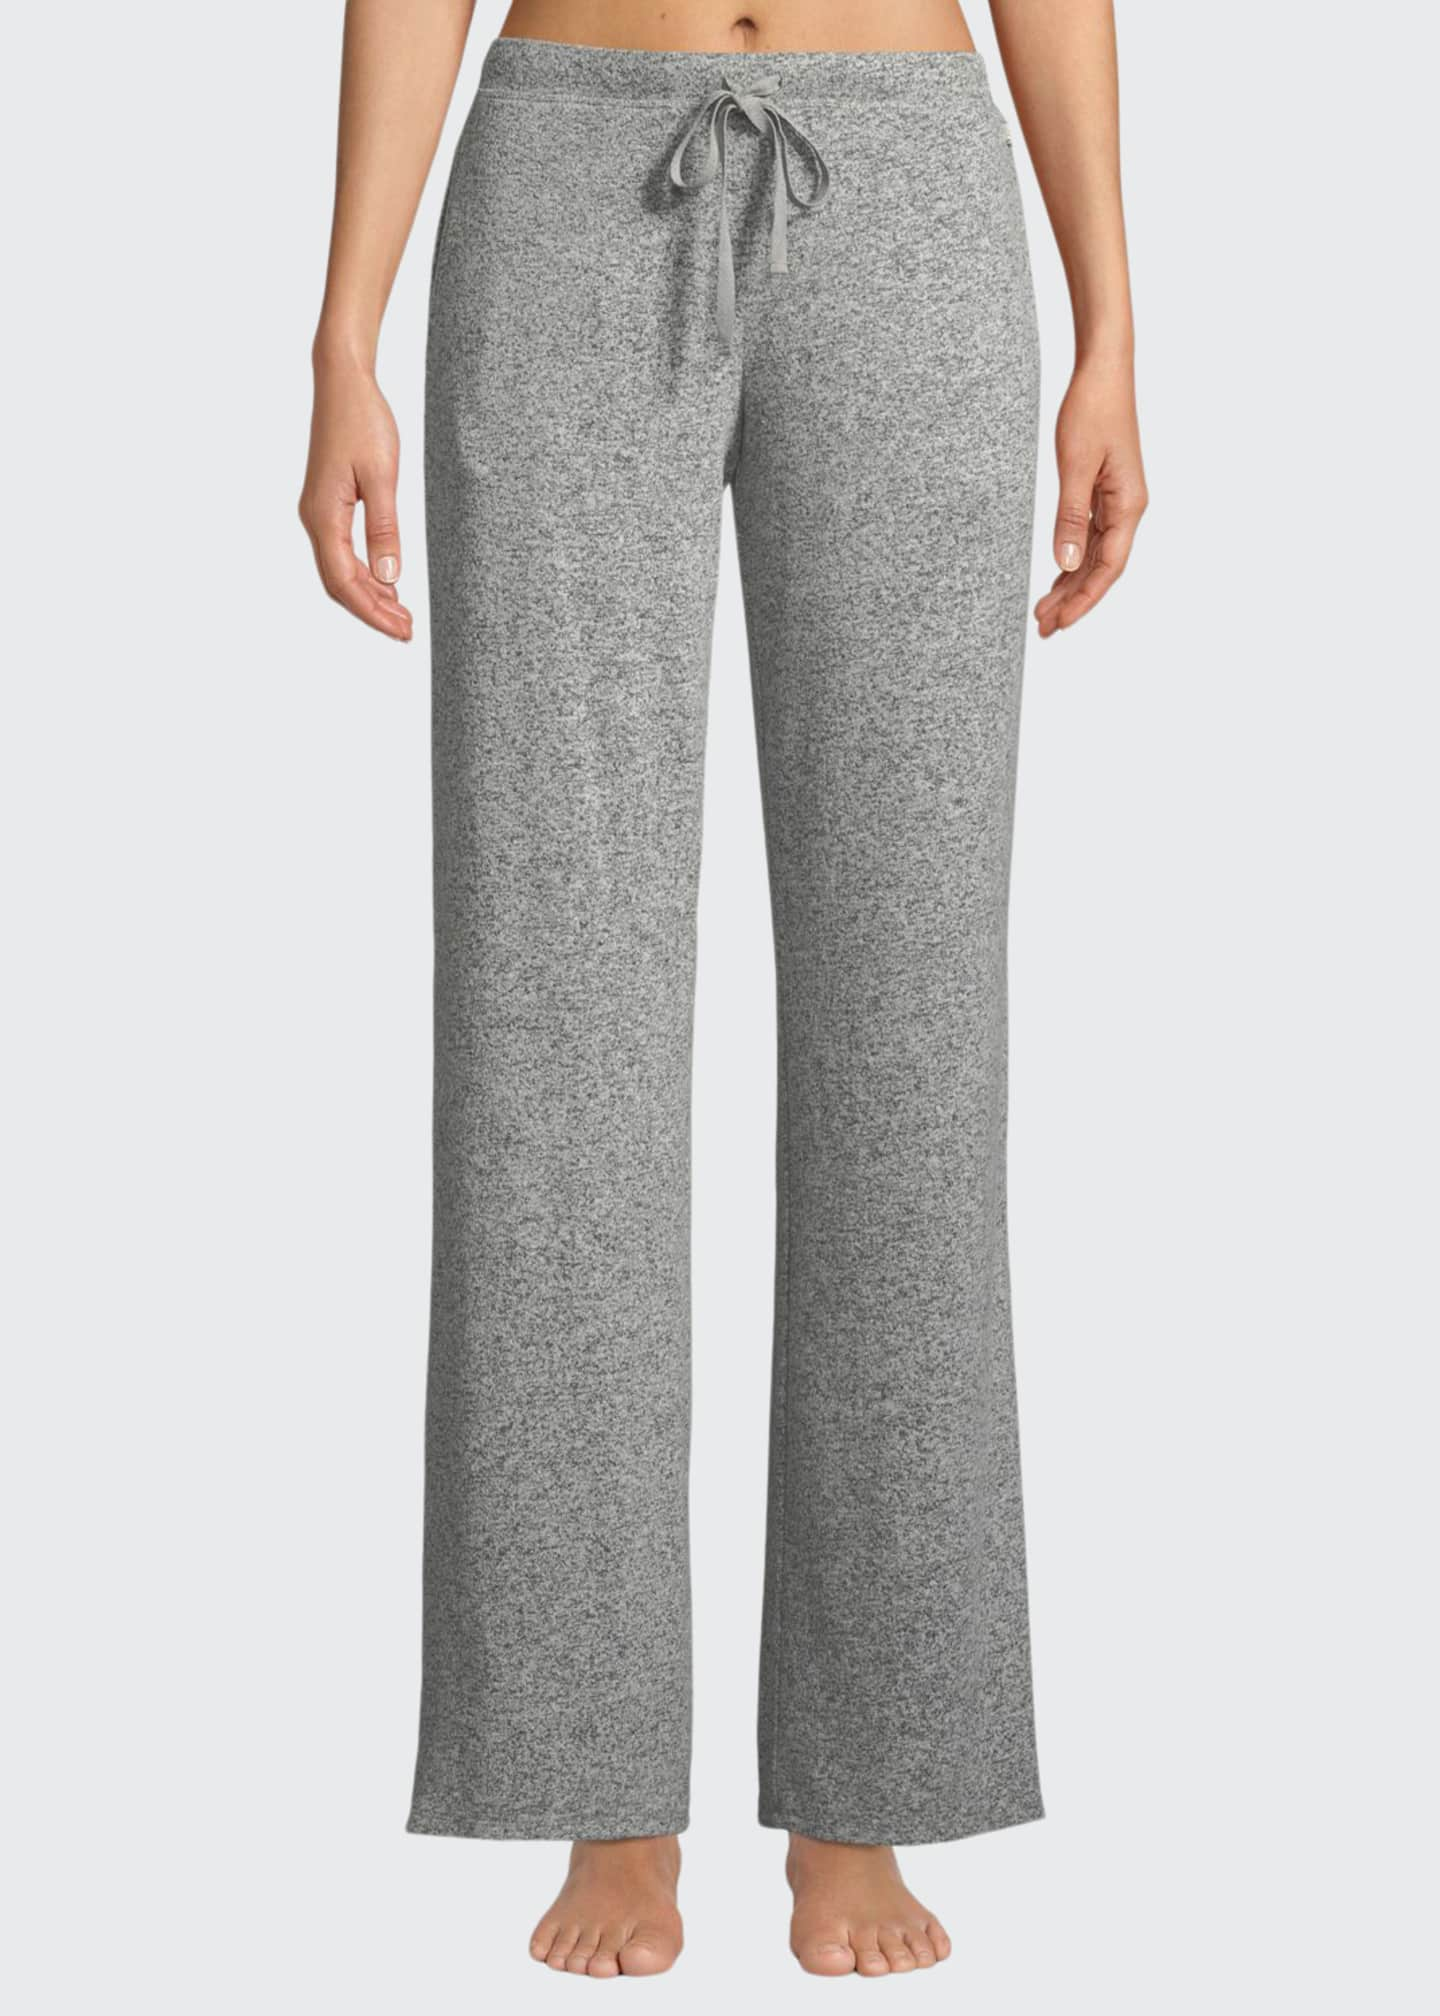 Natori Ulla Brushed Rib-Knit Lounge Pants